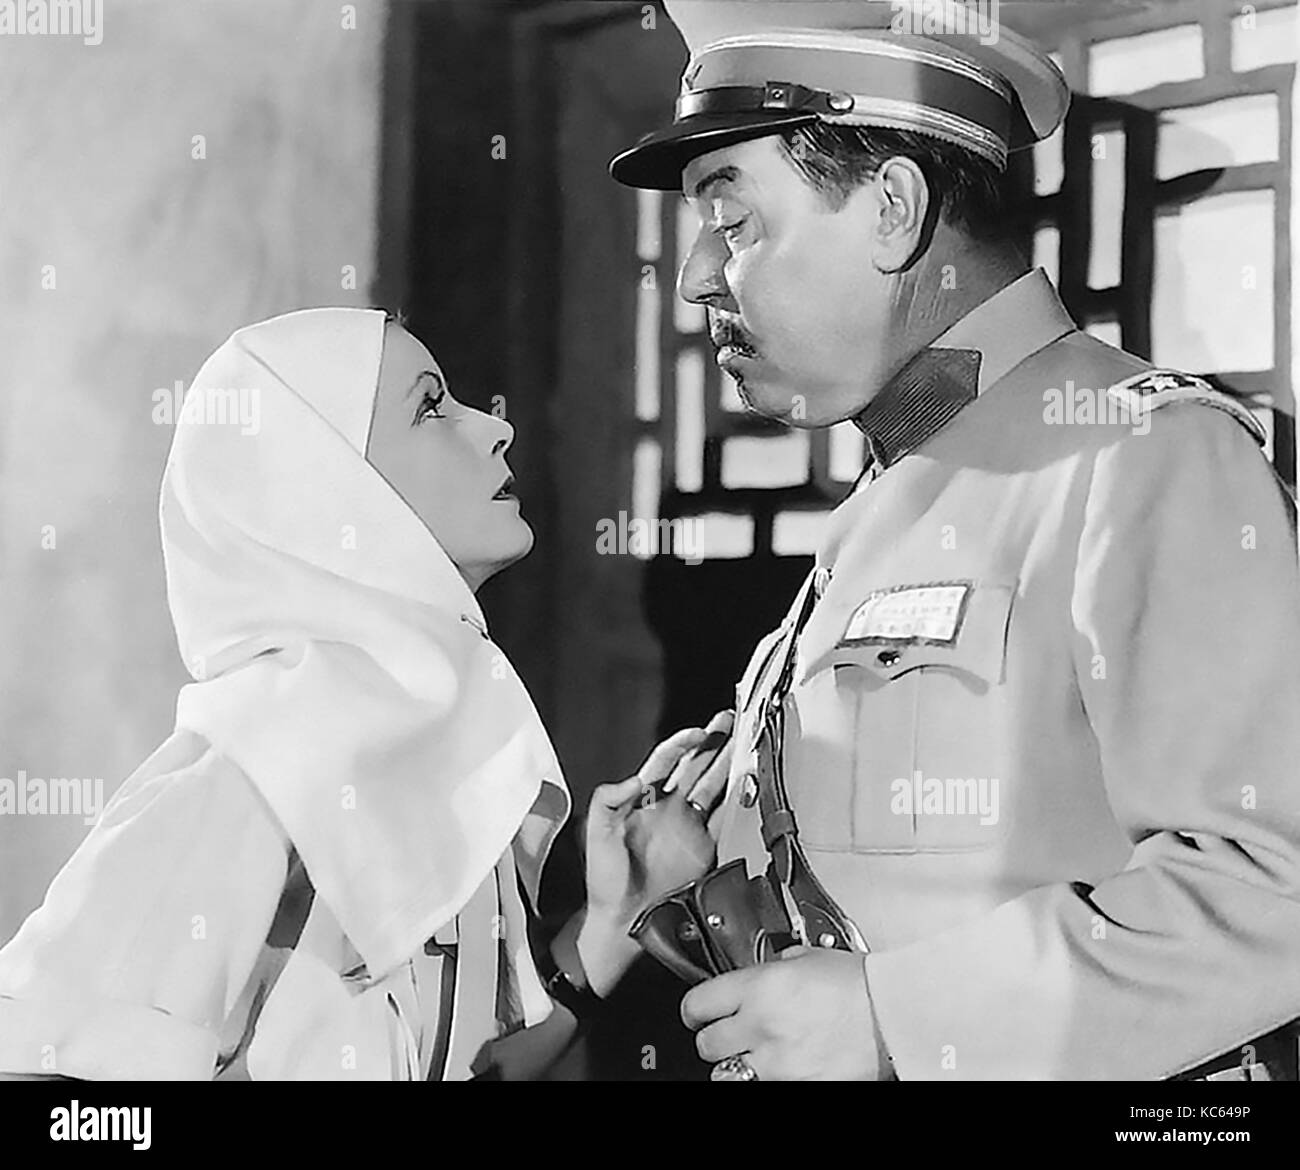 THE PAINTED VEIL 1934 MGM film with Greta Garbo and Warner Oland - Stock Image